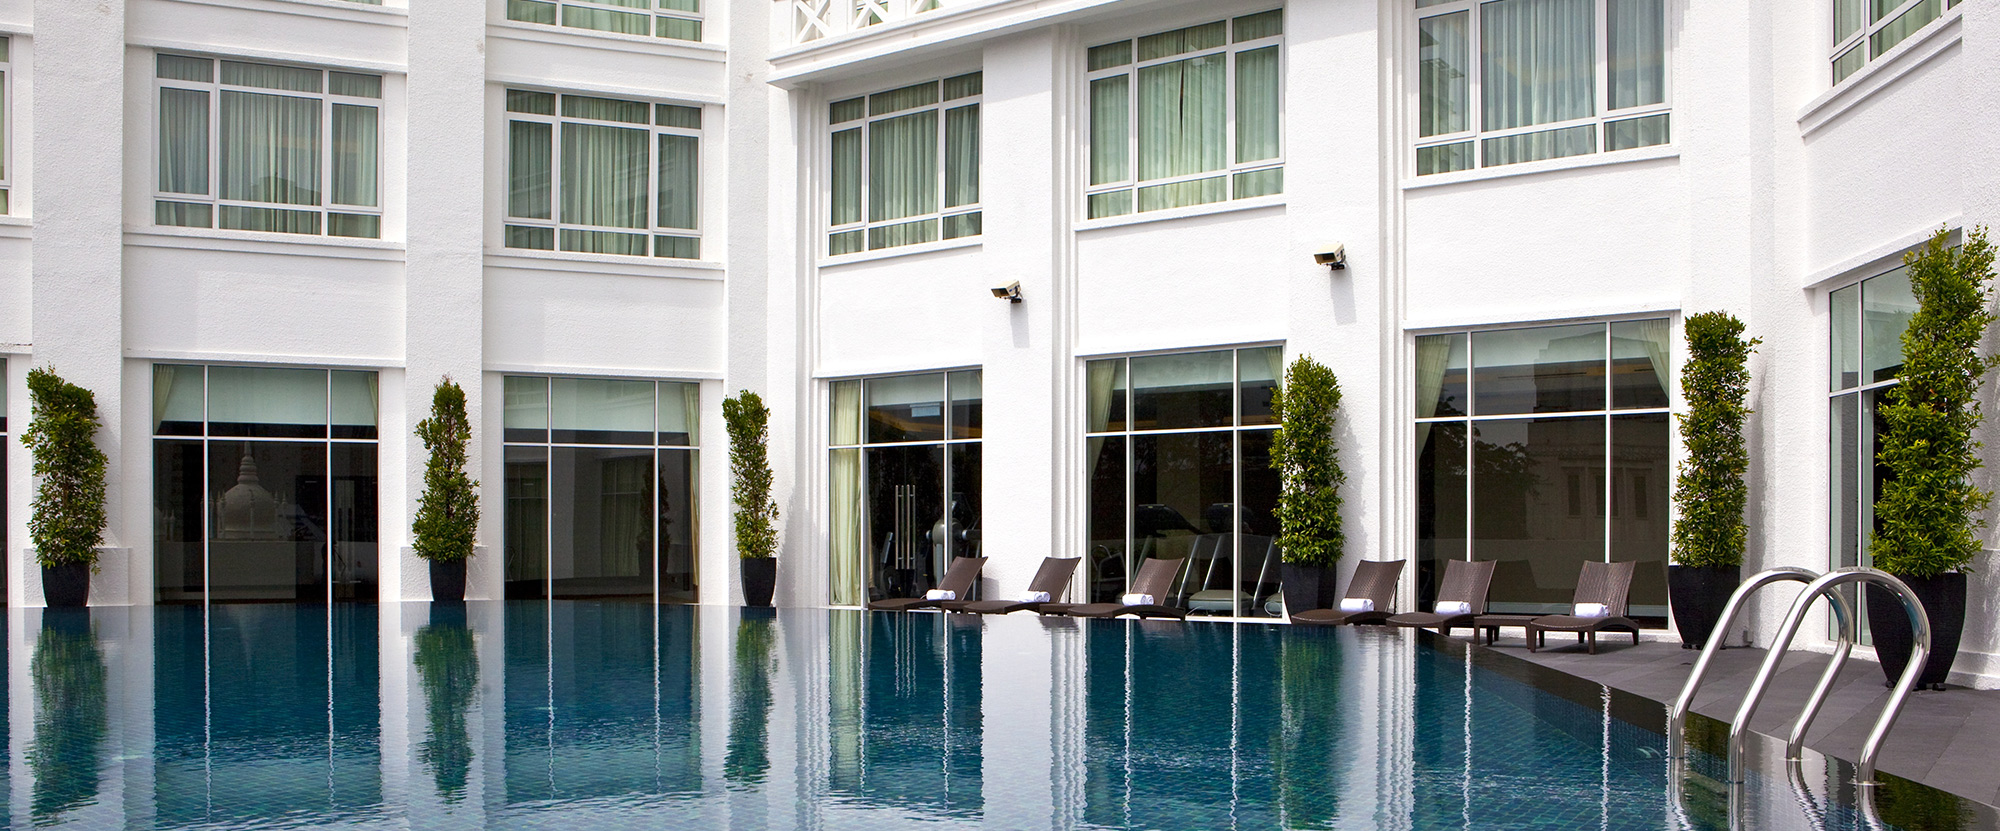 the-majestic-hotel-fourth-floor-pool